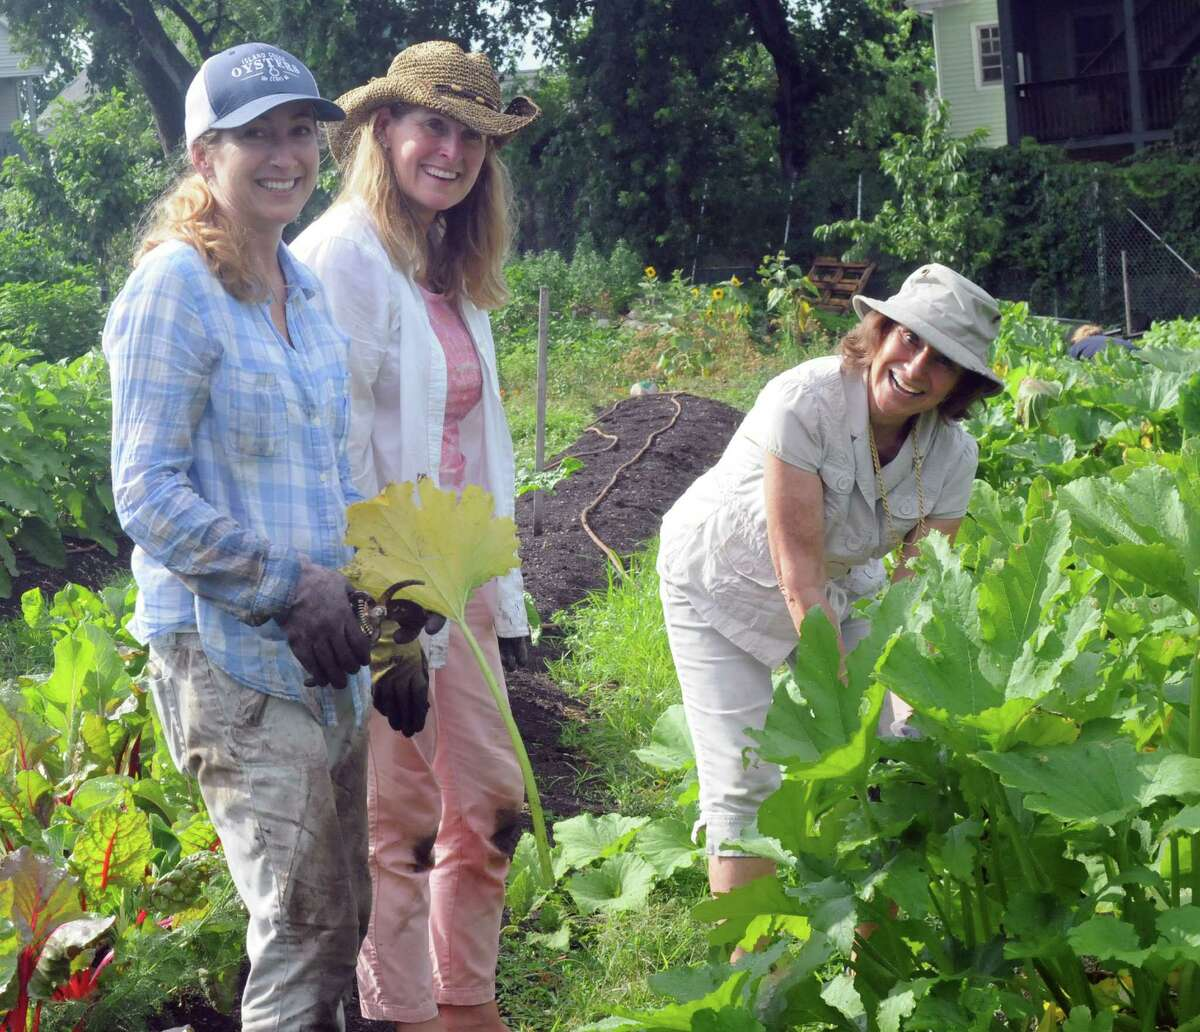 Shana Hurkala, Tara Dolman and Ann Gilmartin work at Fairgate Farm in Stamford, CT, on Monday, July 25, 2016, as part of the 30th anniversary celebration for Wings Unlimited, a meeting planning company in Darien.